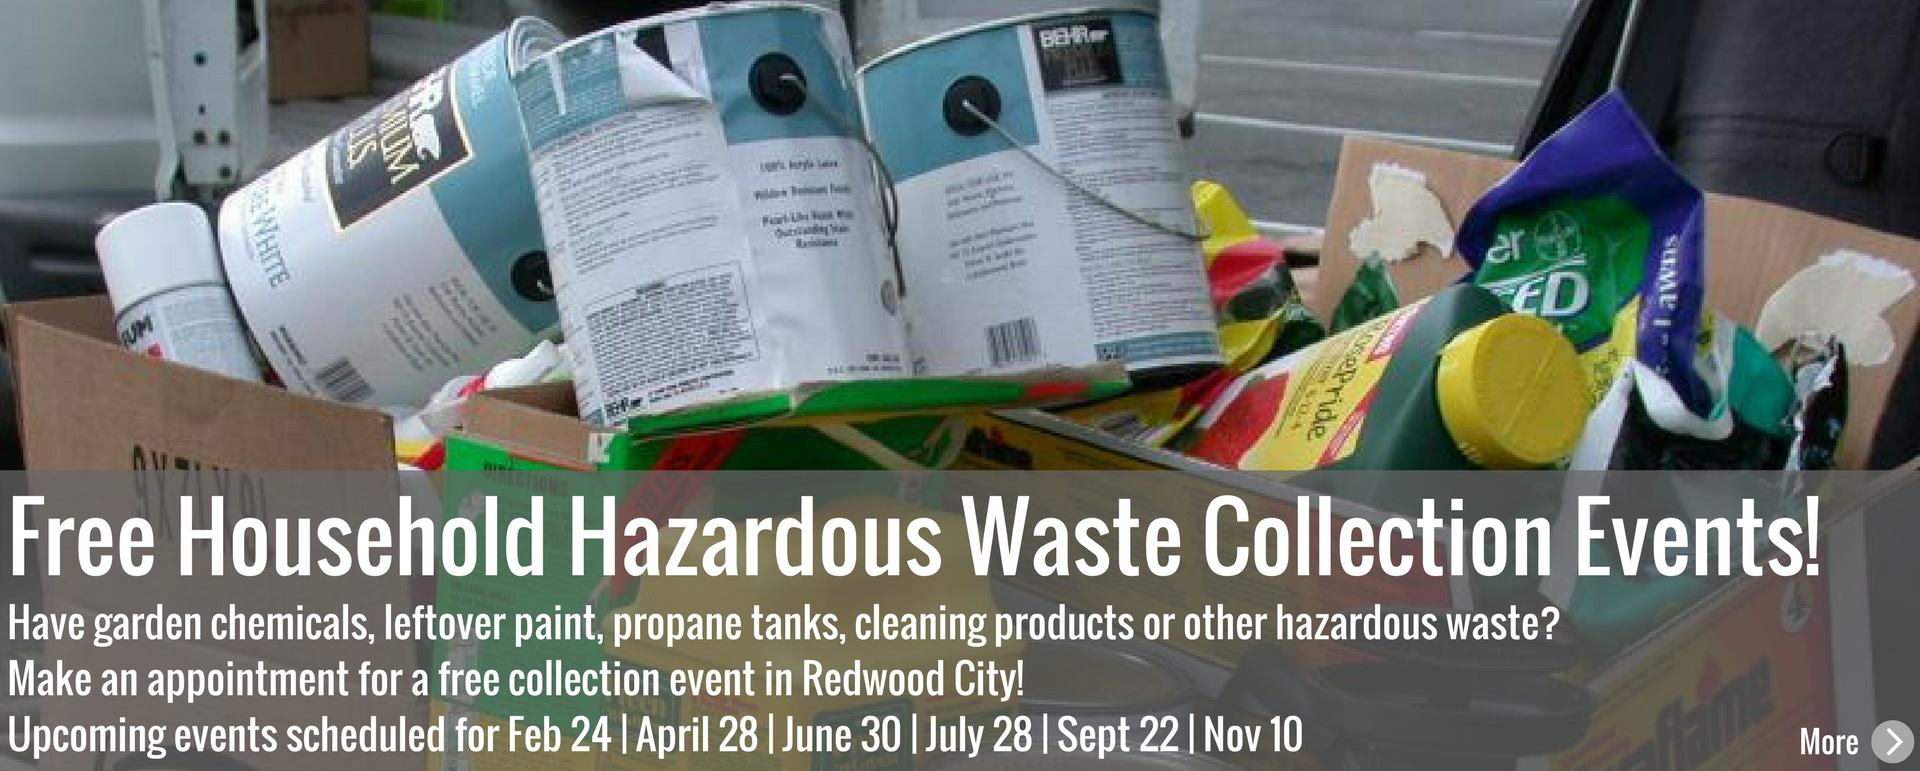 Solid Waste | City of Redwood City